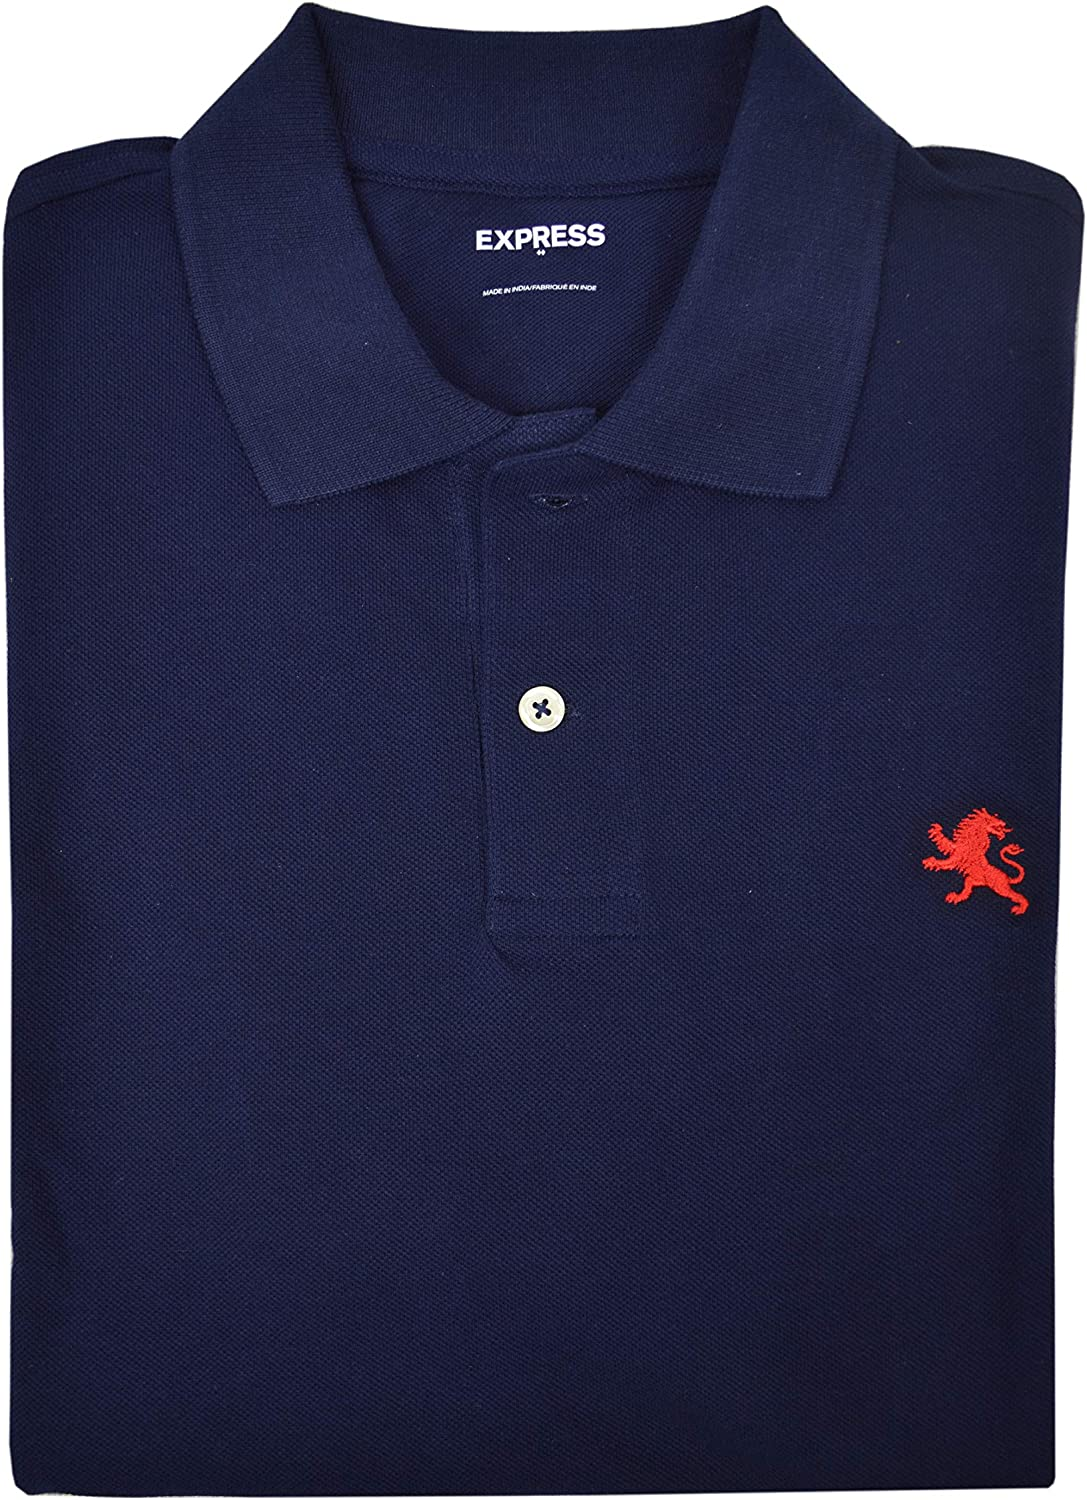 Classico Pot crack Manutenzione  Express Mens Short Sleeve Lion Embroidered Pique Polo Shirt Navy Blue  (Small) at Amazon Men's Clothing store